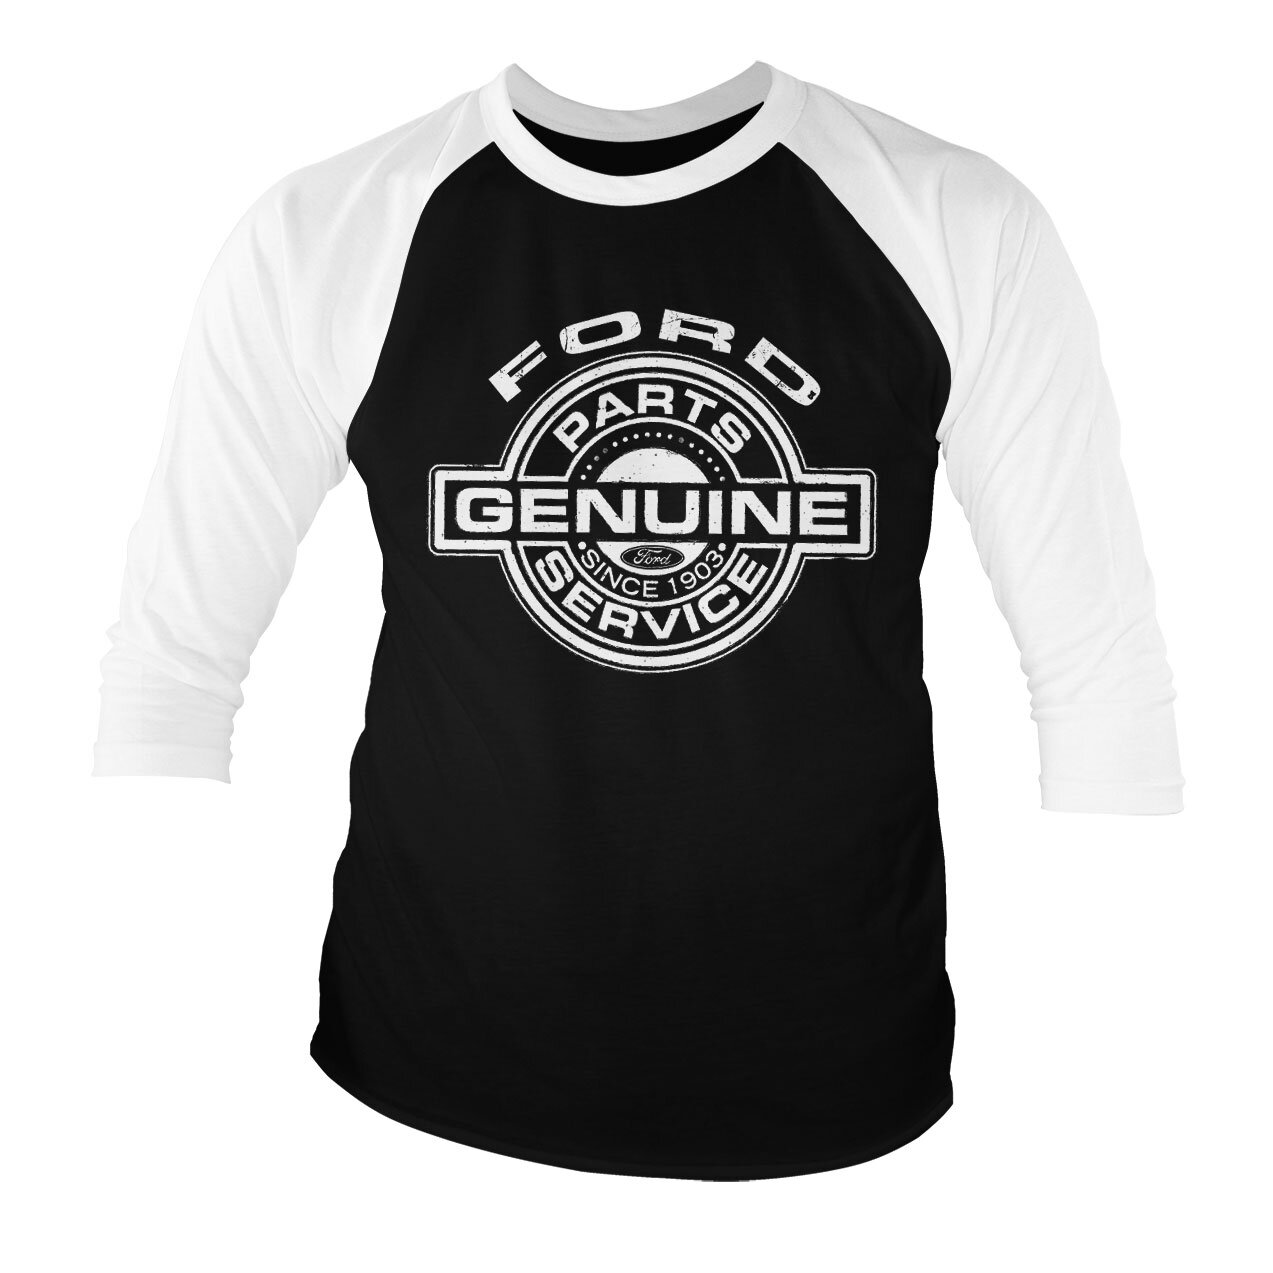 Ford - Genuine Parts And Service Baseball 3/4 Sleeve Tee